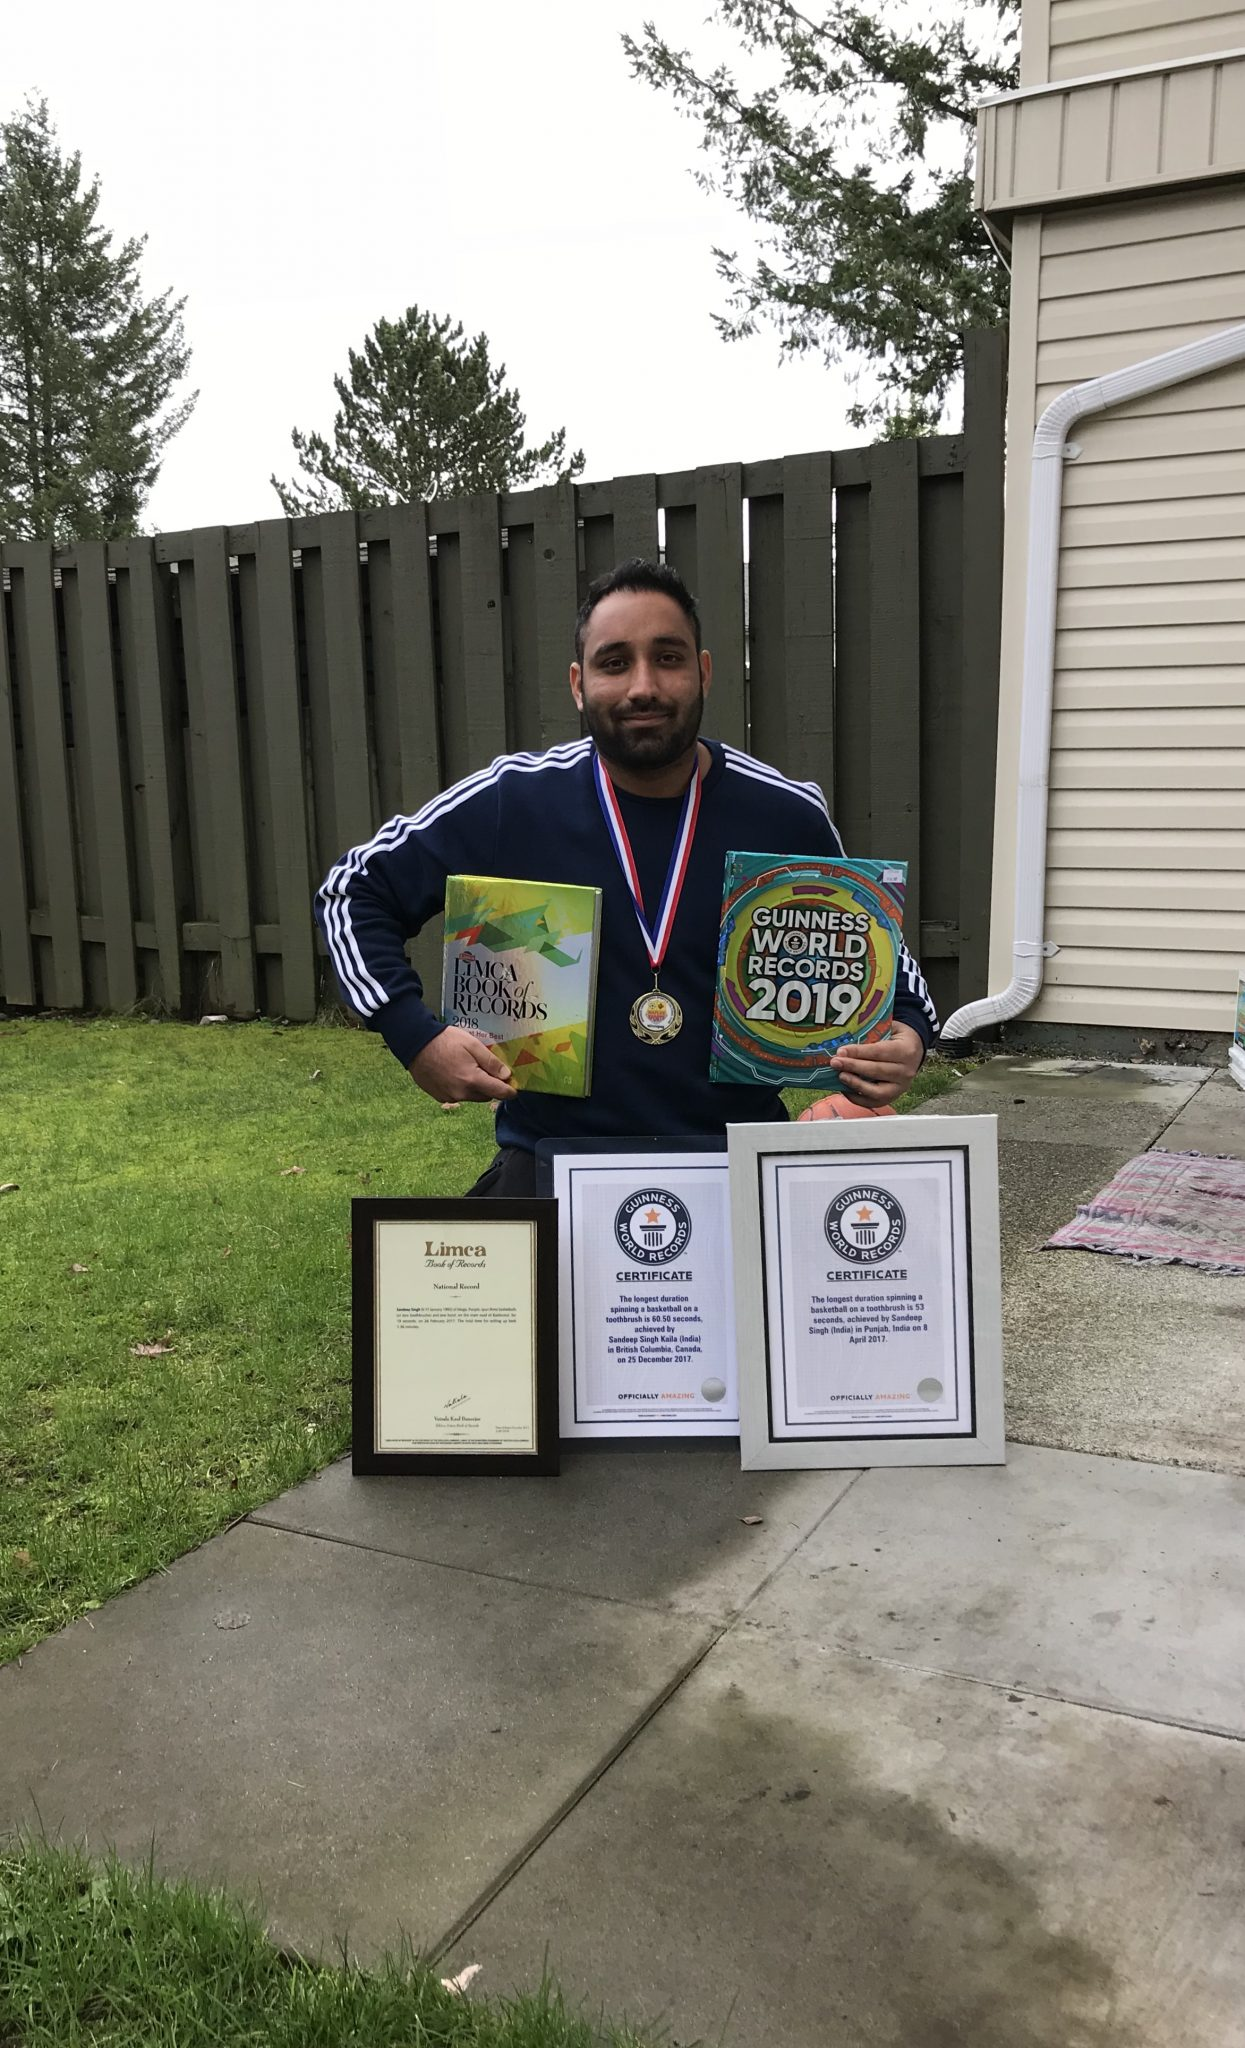 Local Abbotsford Man Sets Guinness World Record